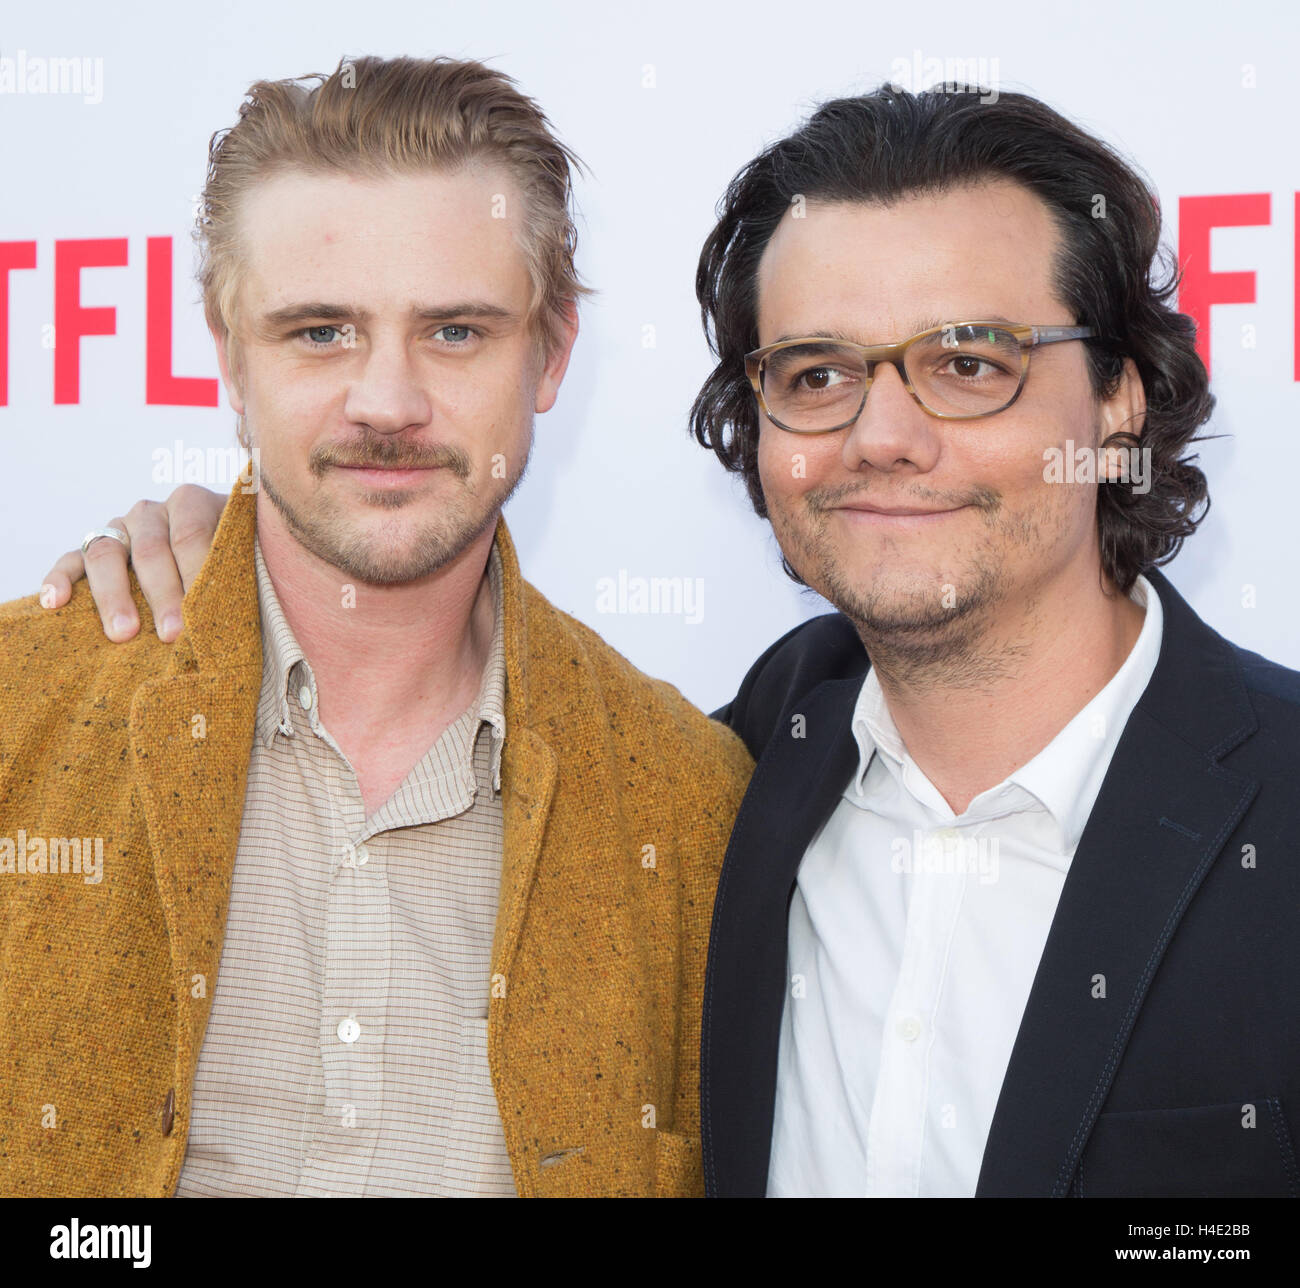 Wagner Moura Stock Photos & Wagner Moura Stock Images - Alamy